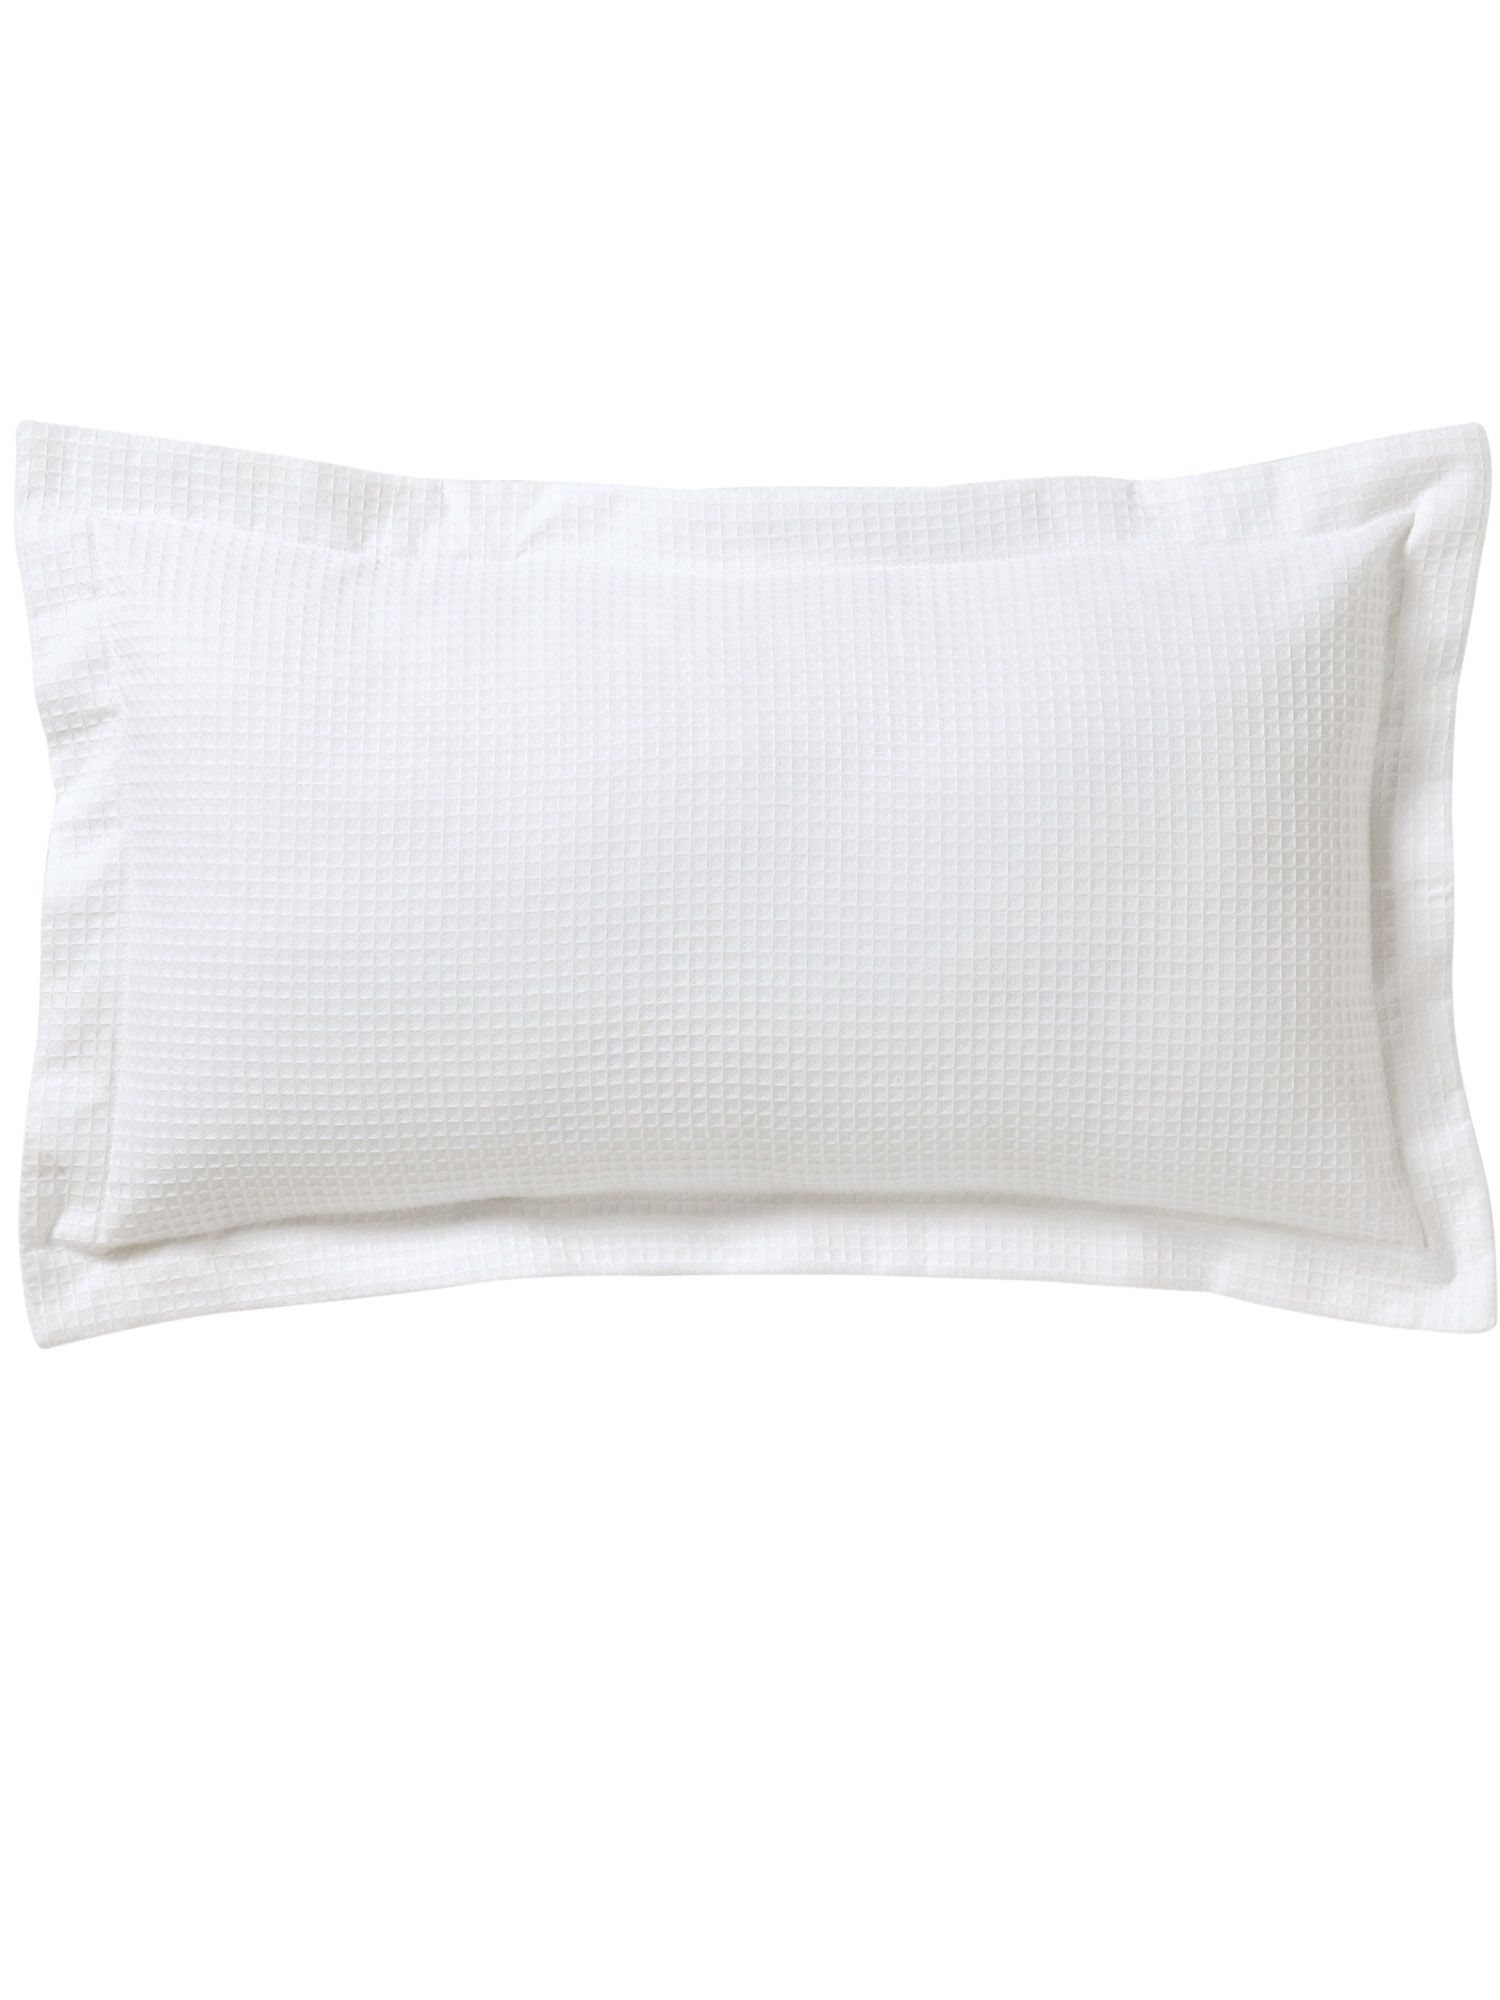 Sanctuary cushions 30x50cm white